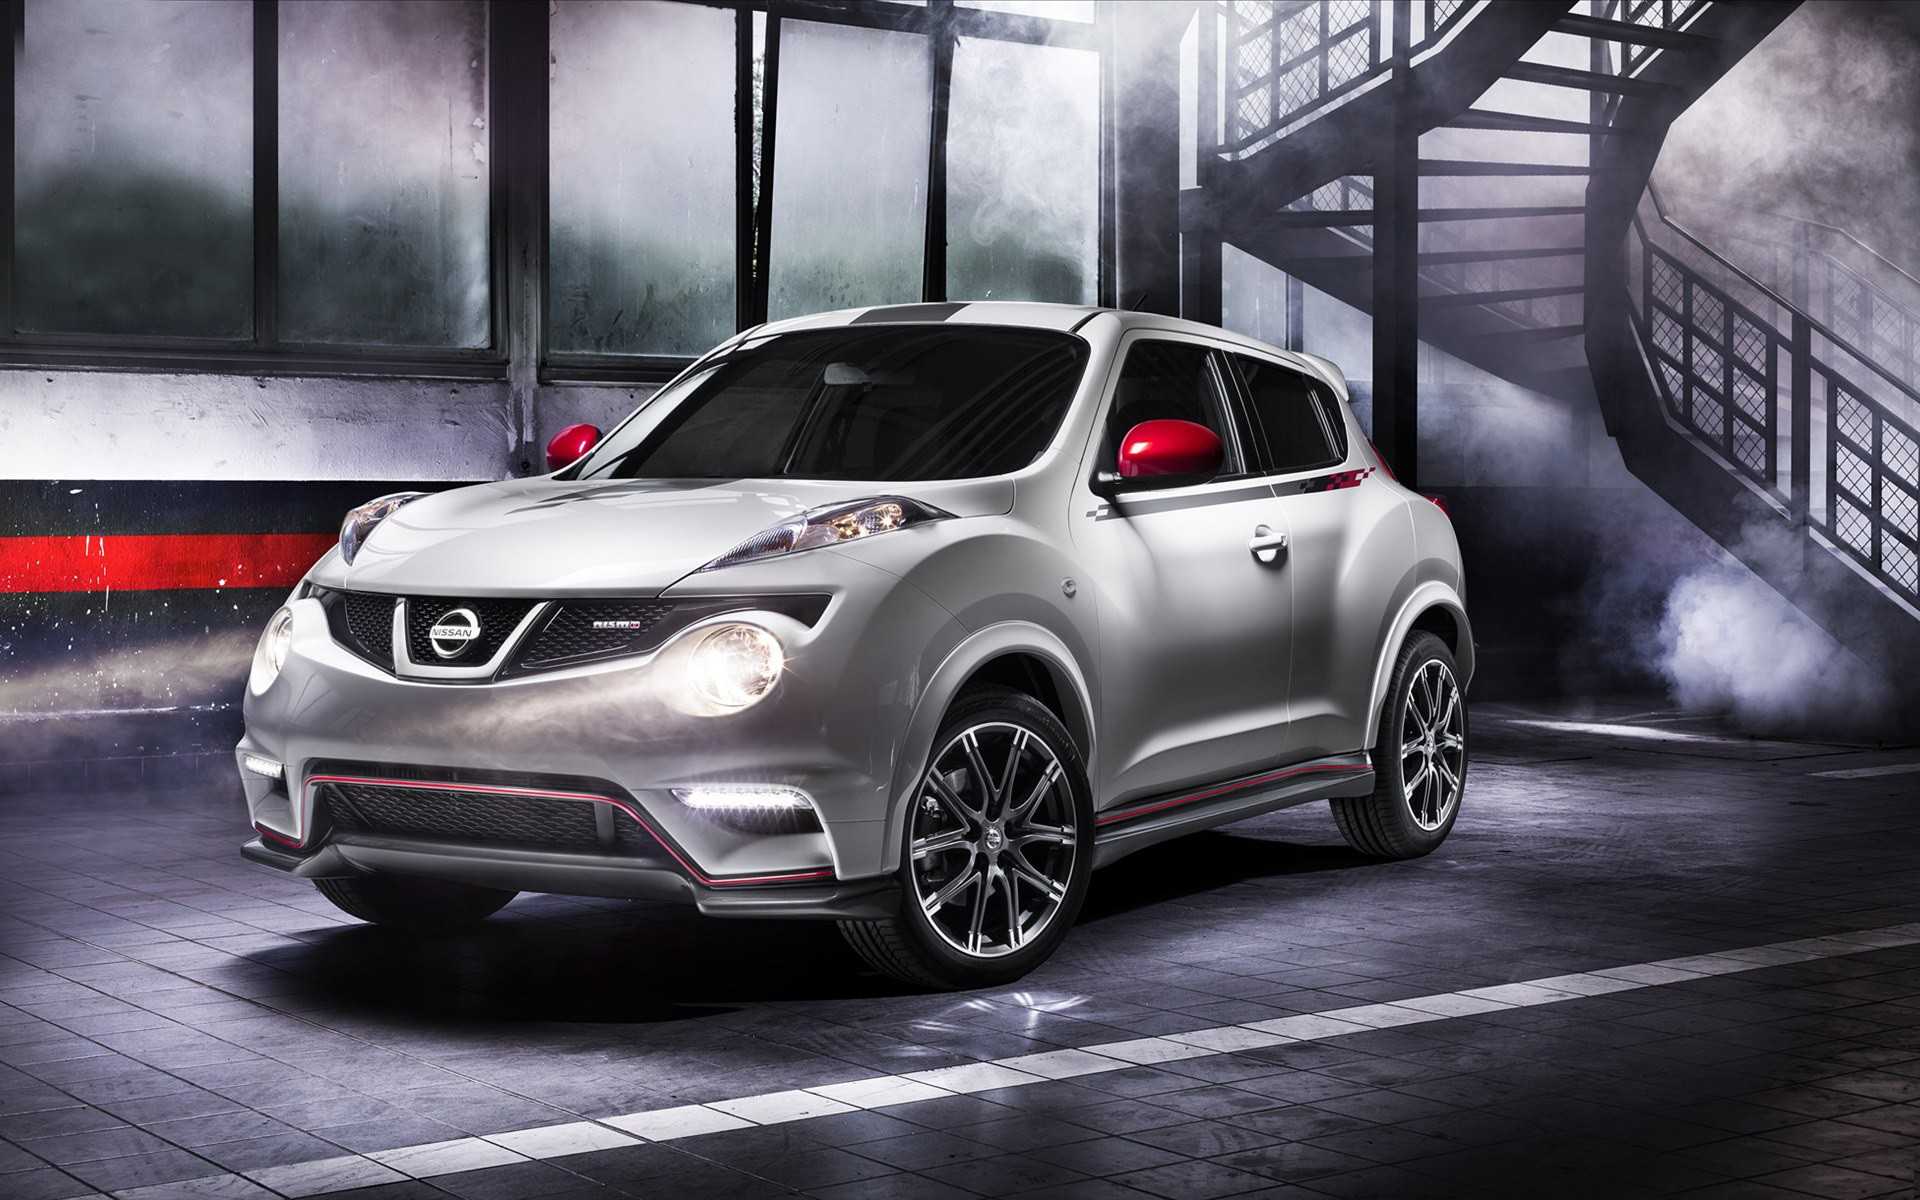 Nissan Juke Nismo 2013 Wallpaper HD Car Wallpapers ID